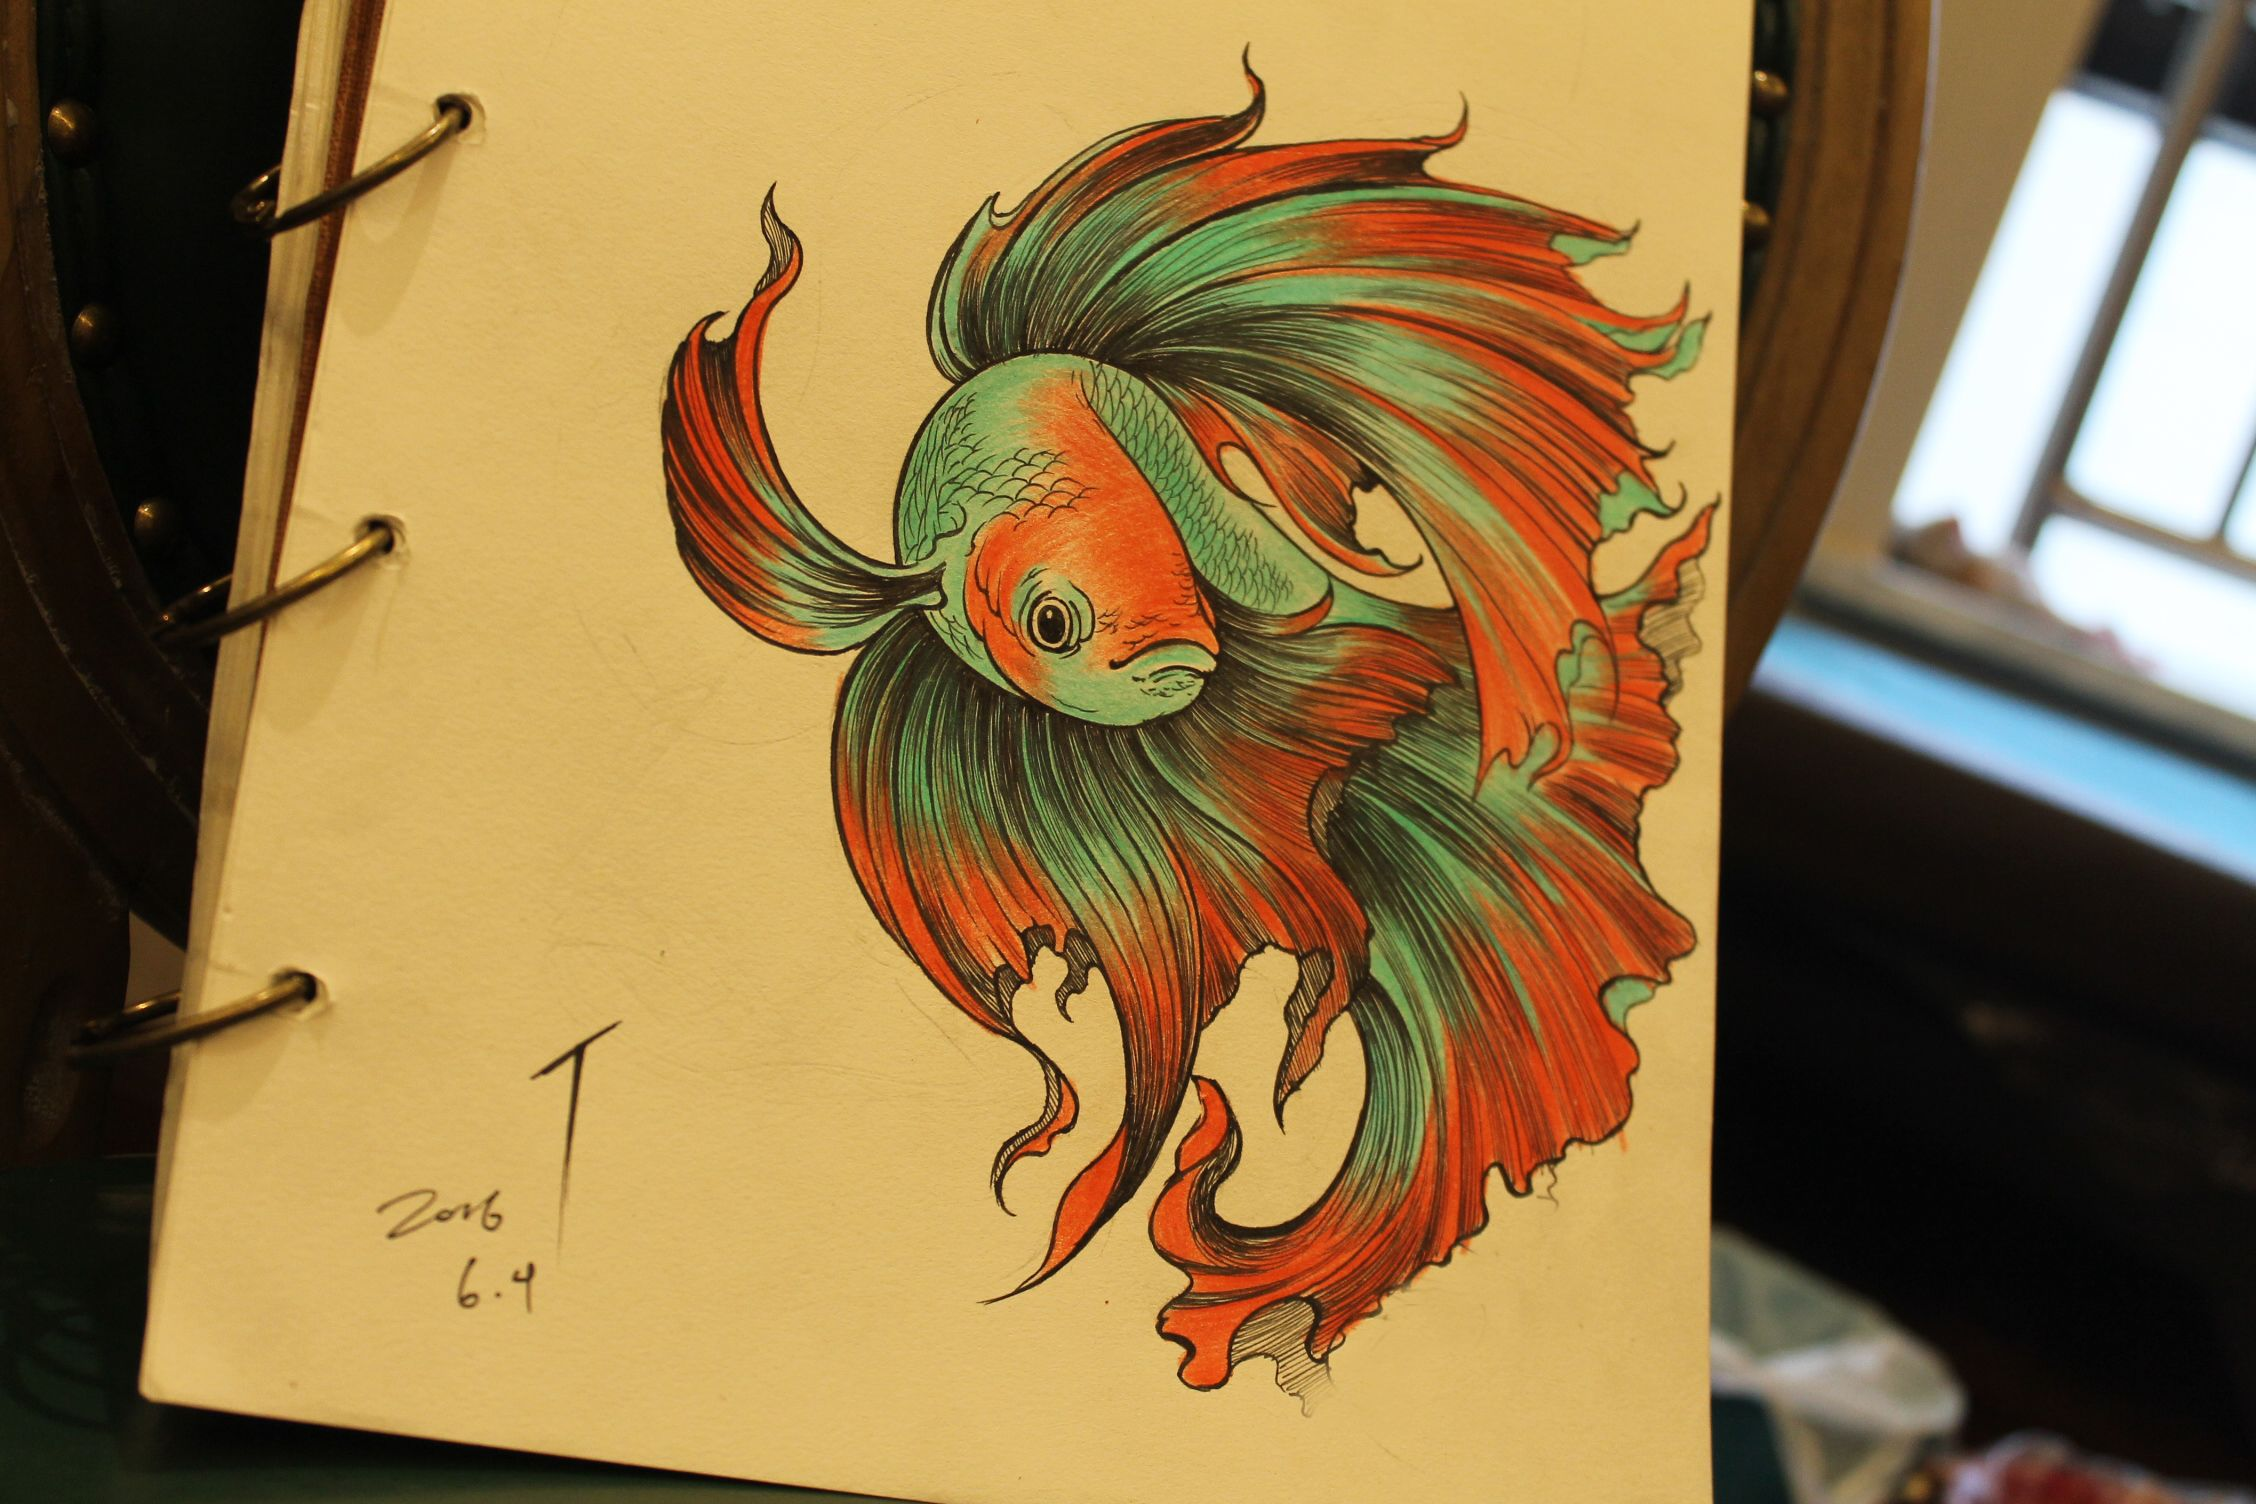 Common Betta Fish Diseases Betta Fish Care A Betta Fish Must Read Betta Fish Tattoo Fish Drawings Betta Tattoo